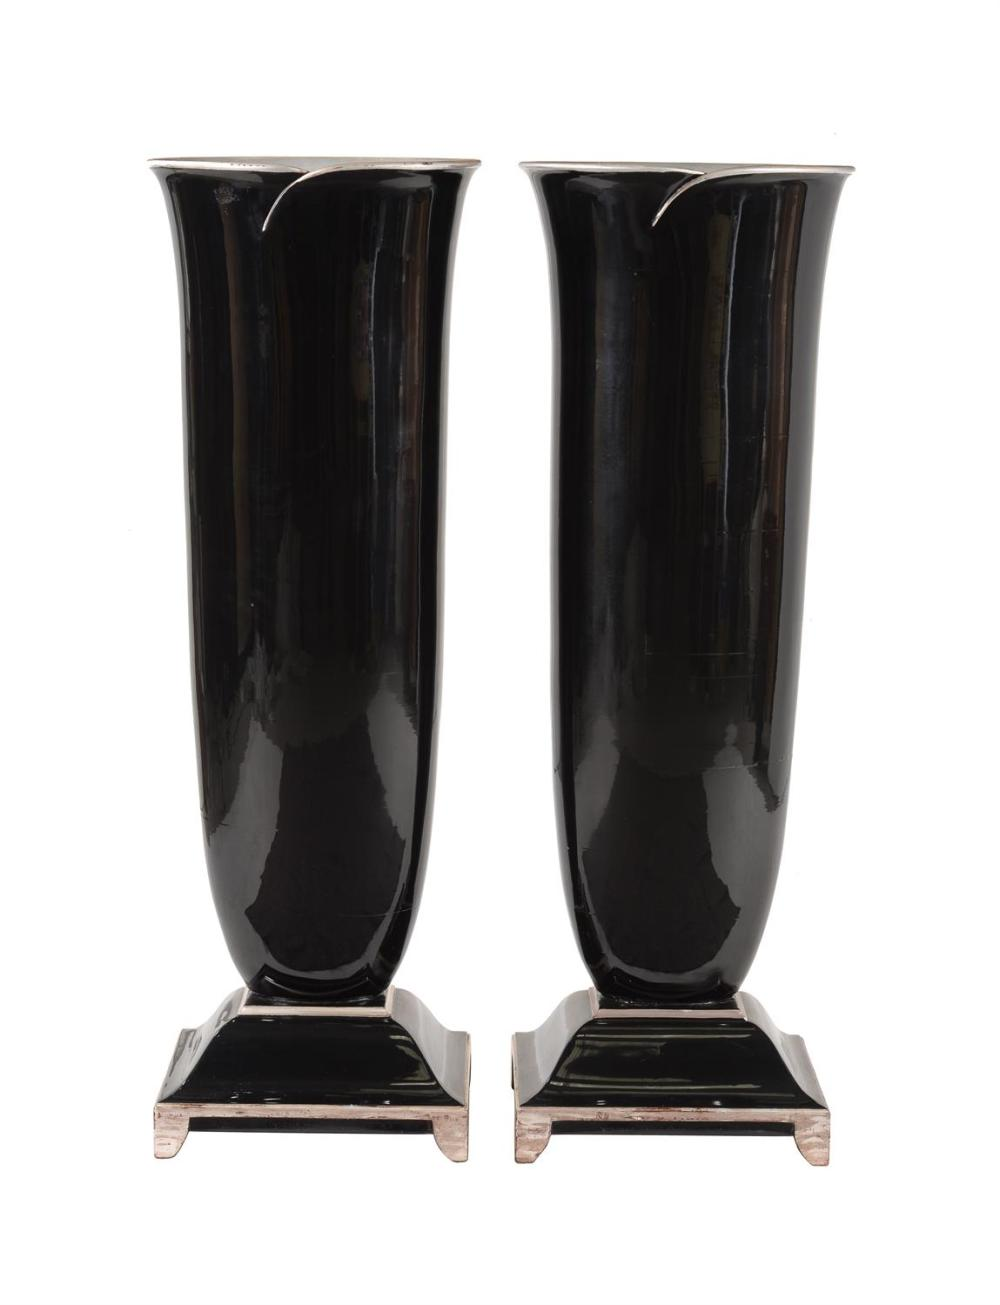 A pair of floor standing black lacquered and silver painted wooden vases